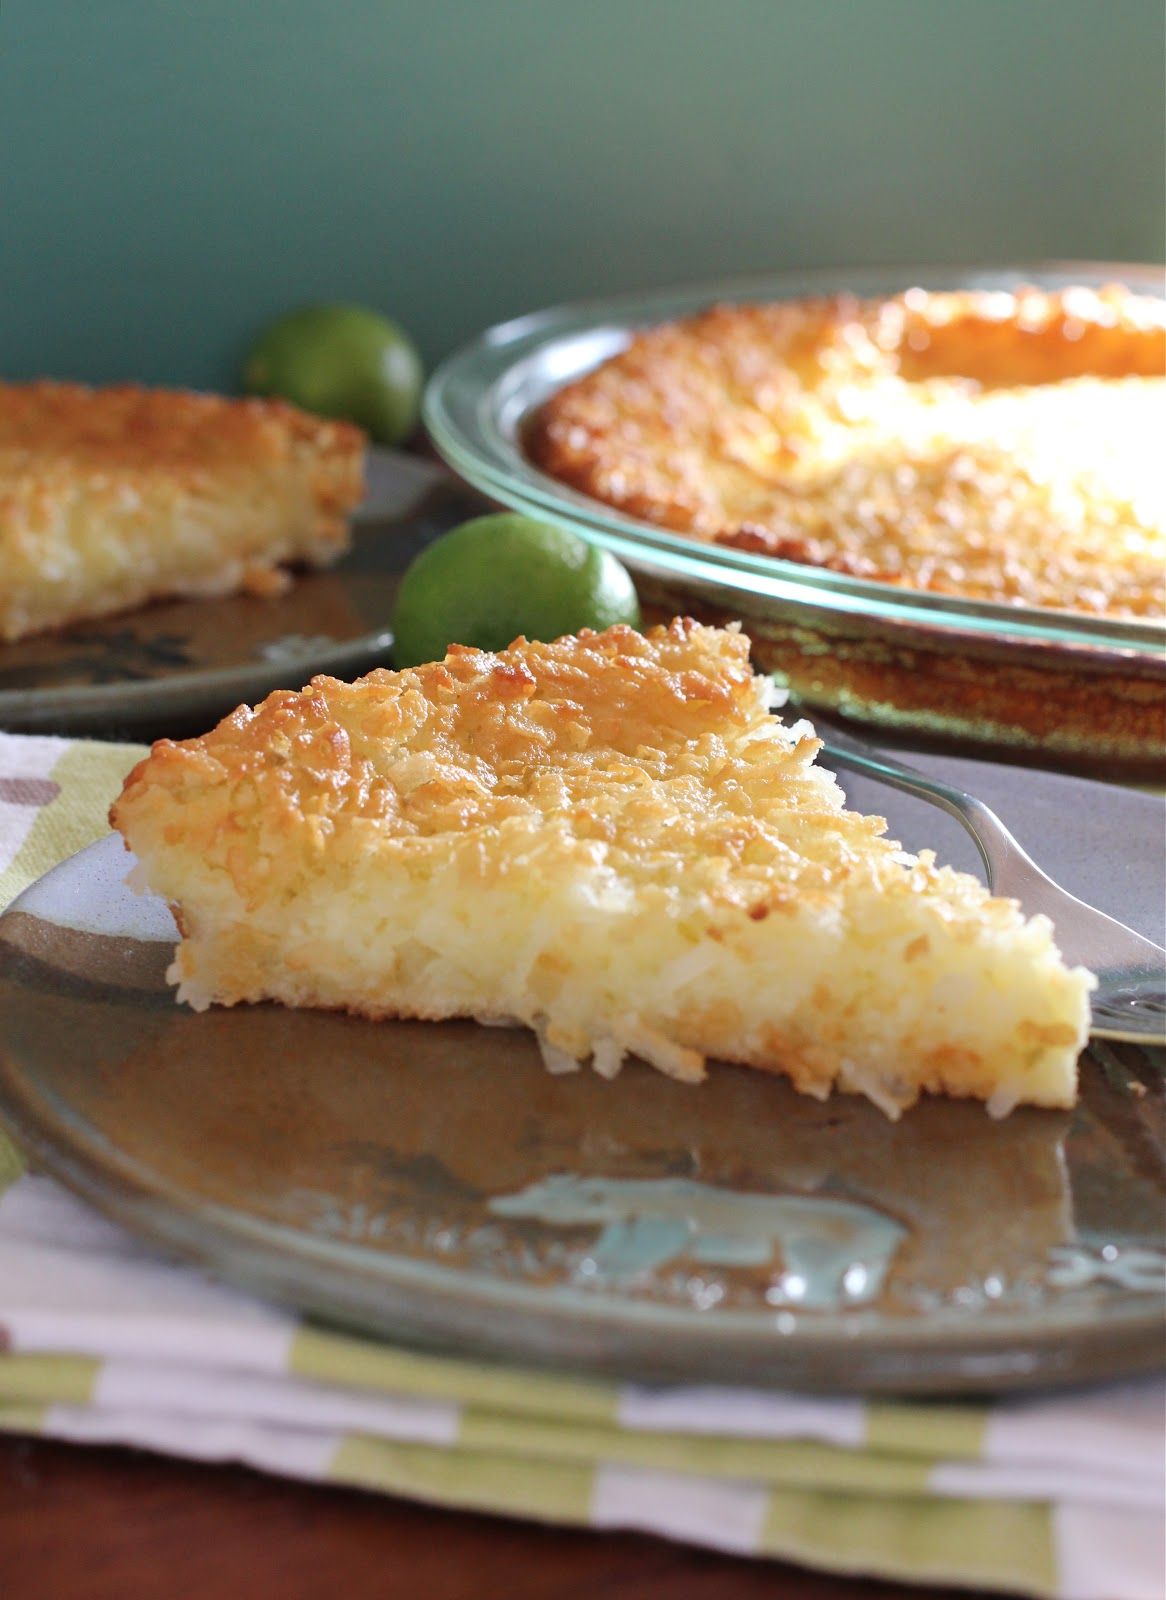 ... Garden Studio: Incredible Coconut Key Lime Pie (an Impossible Pie